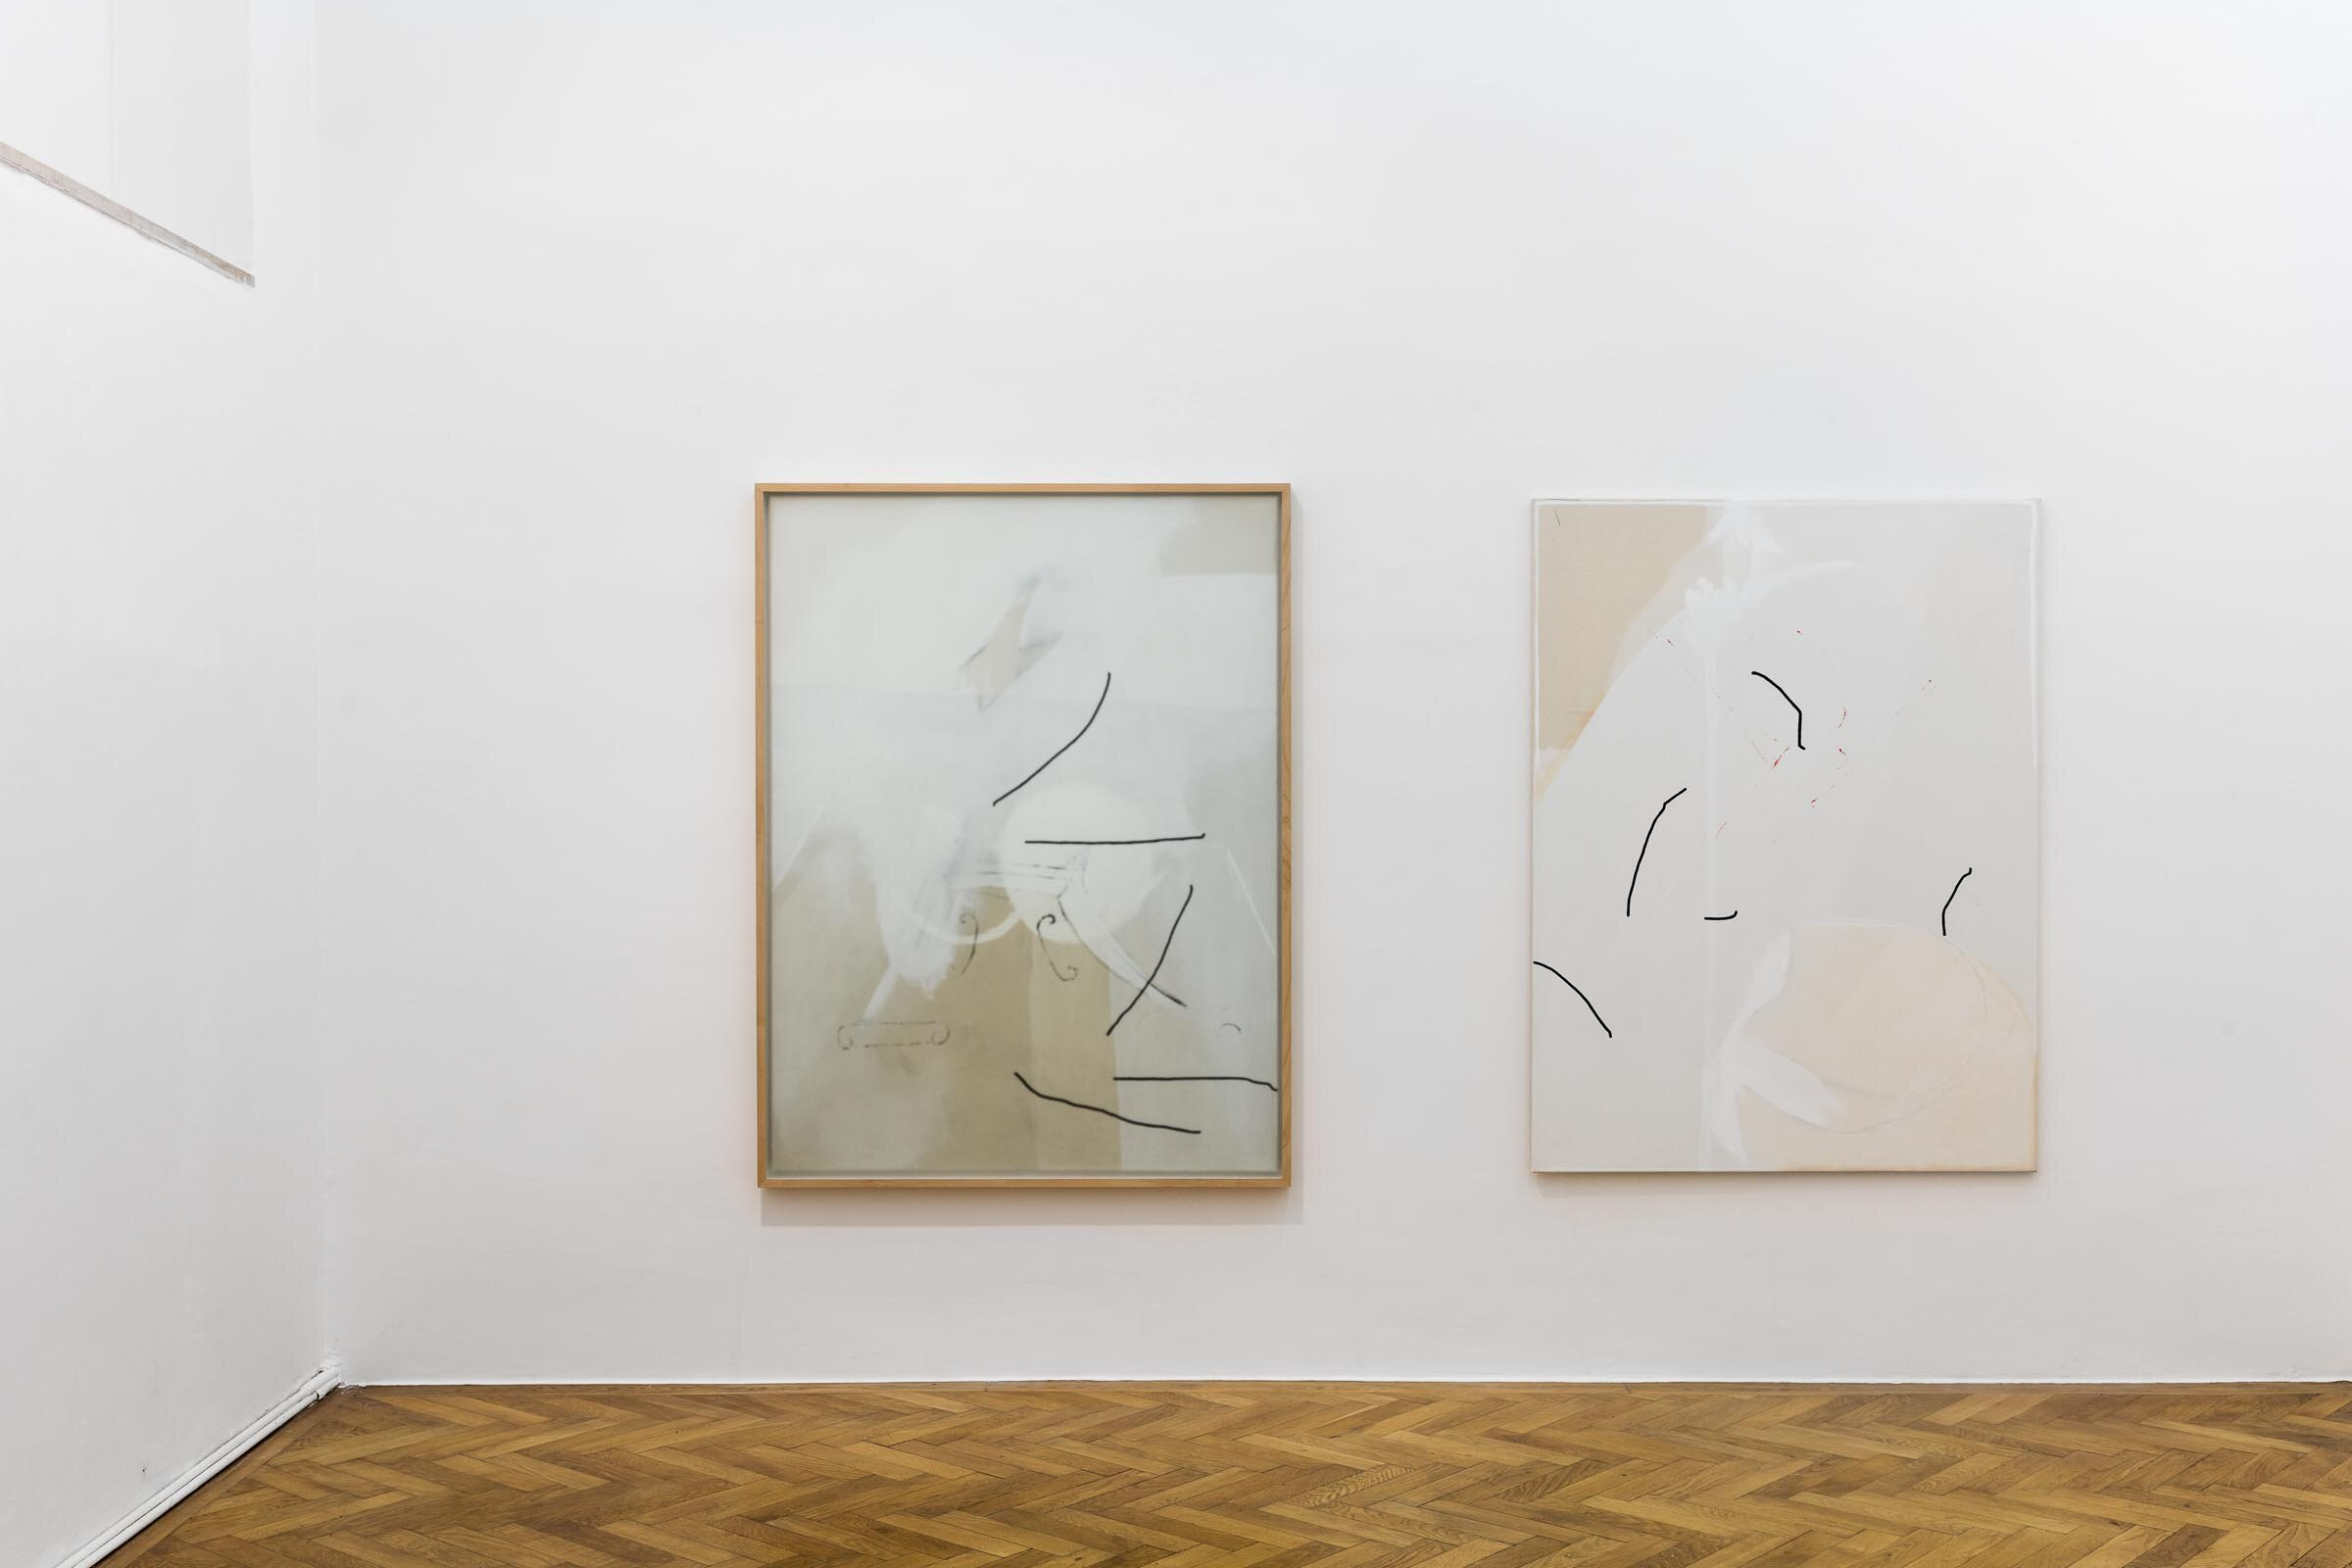 Various Others: Augustas Serapinas & Malte Zenses, installation view, 2019, SPERLING, Munich